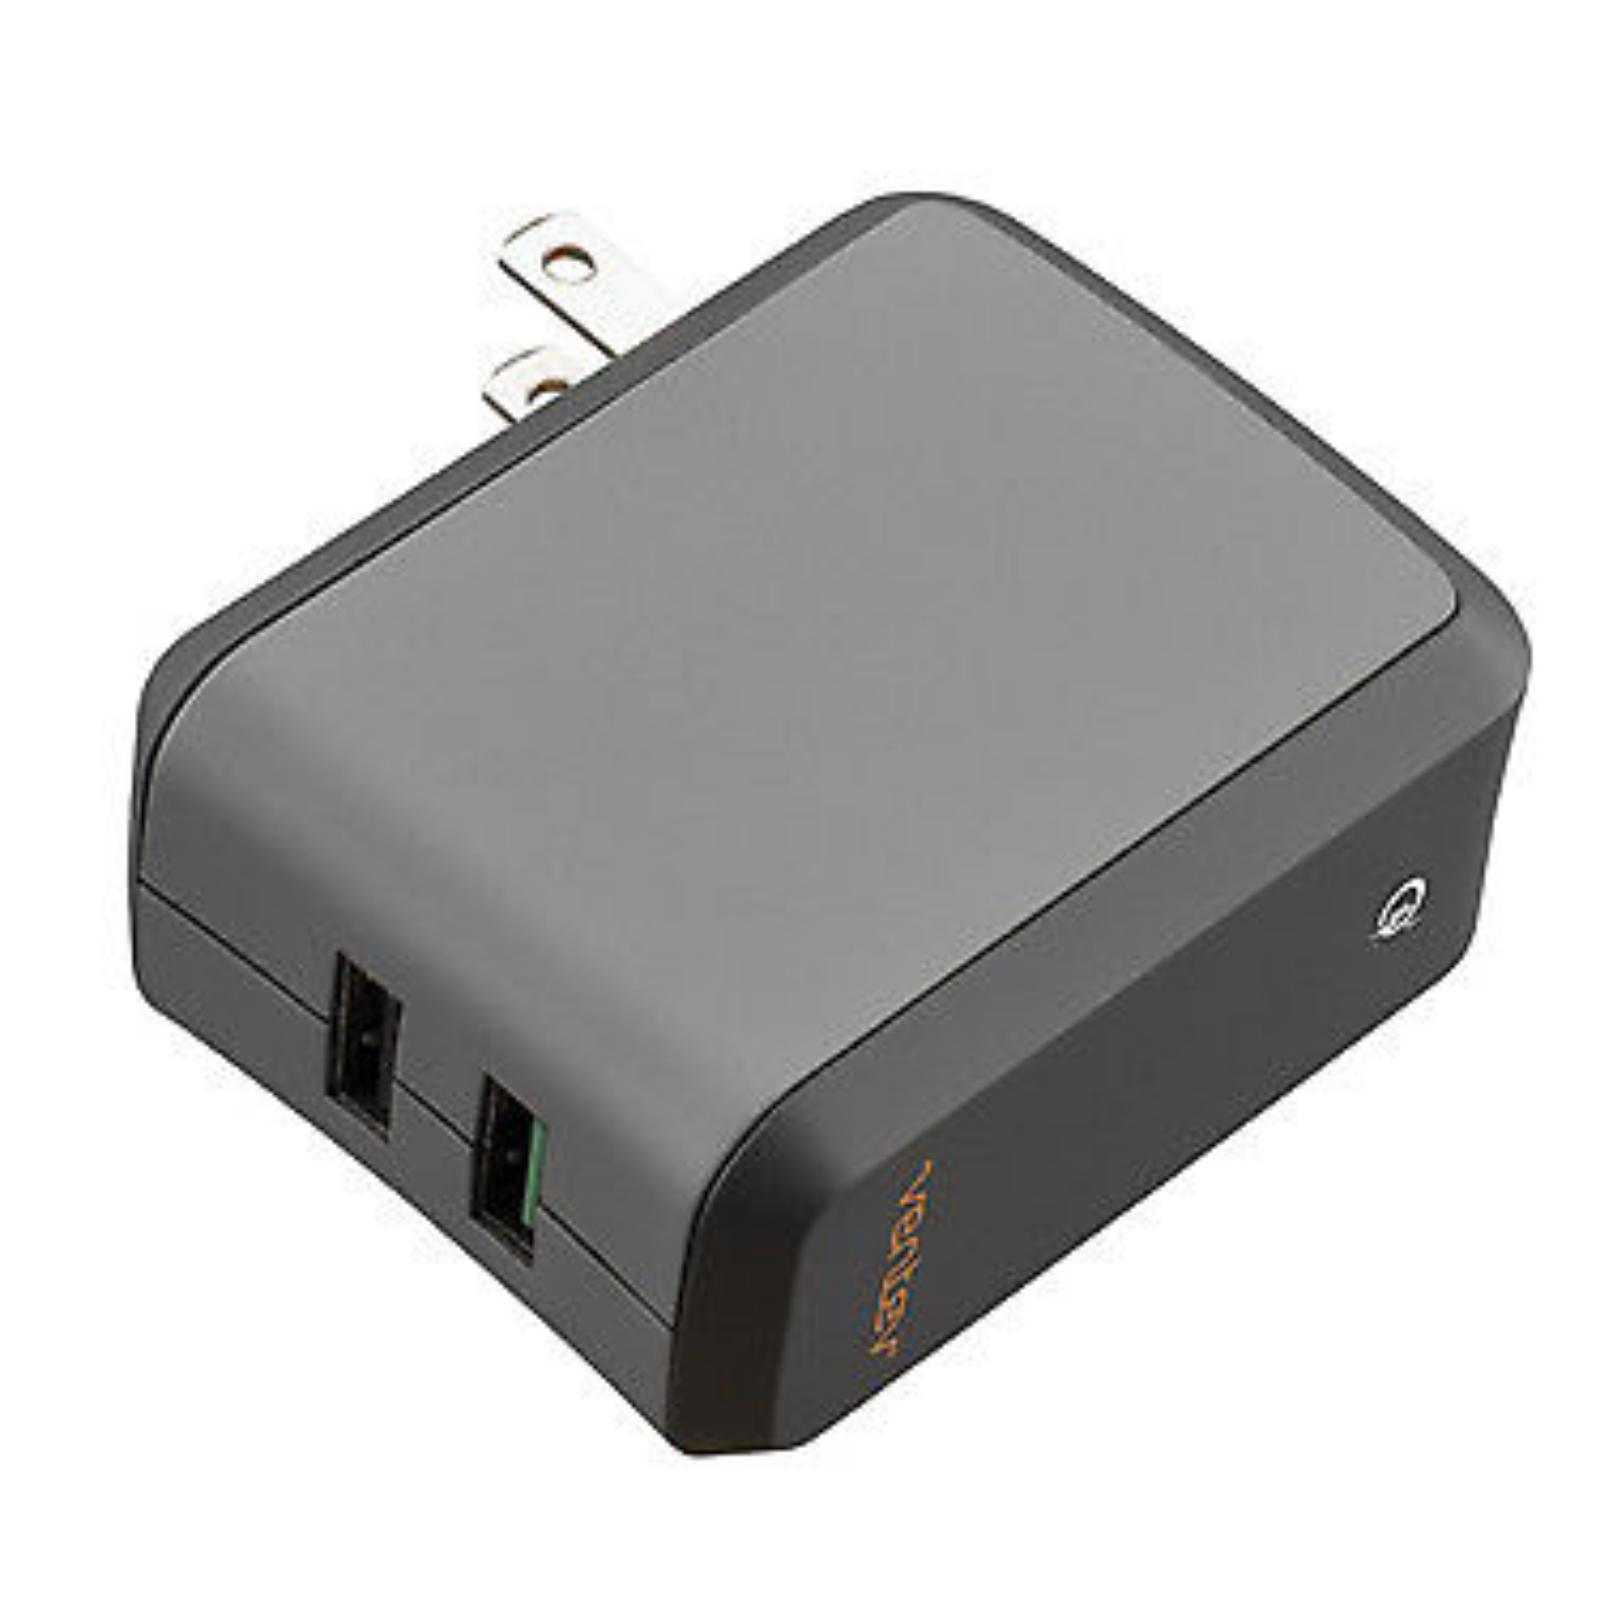 VENTEV WALL CHARGER 2PORT